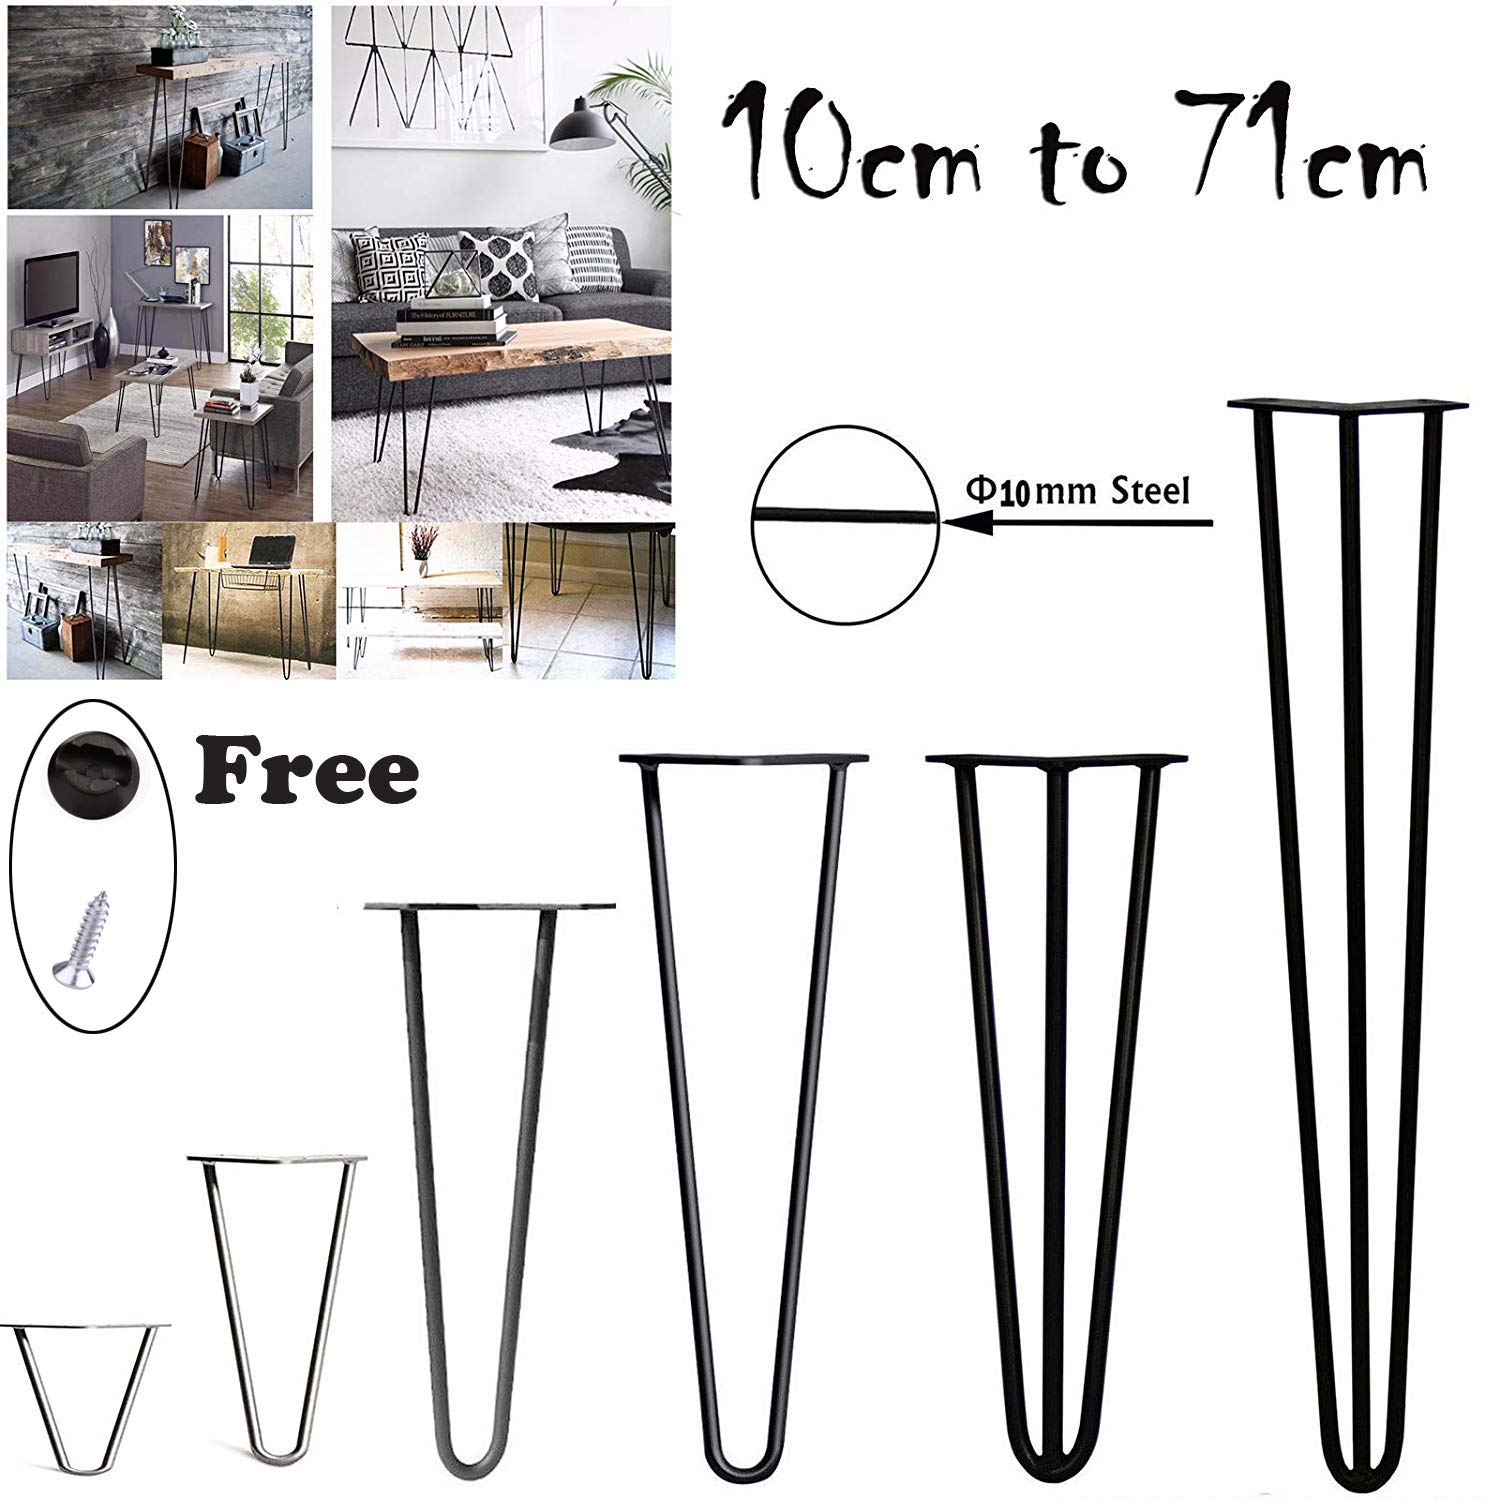 4Pcs Hairpin Table Legs Heavy Duty DIY Furniture Metal Table Legs with Free Screws & Protector Feet - Stable Standard Table Height, 10cm to 72cm, 2Rods, Black (20cm) AutoBaBa